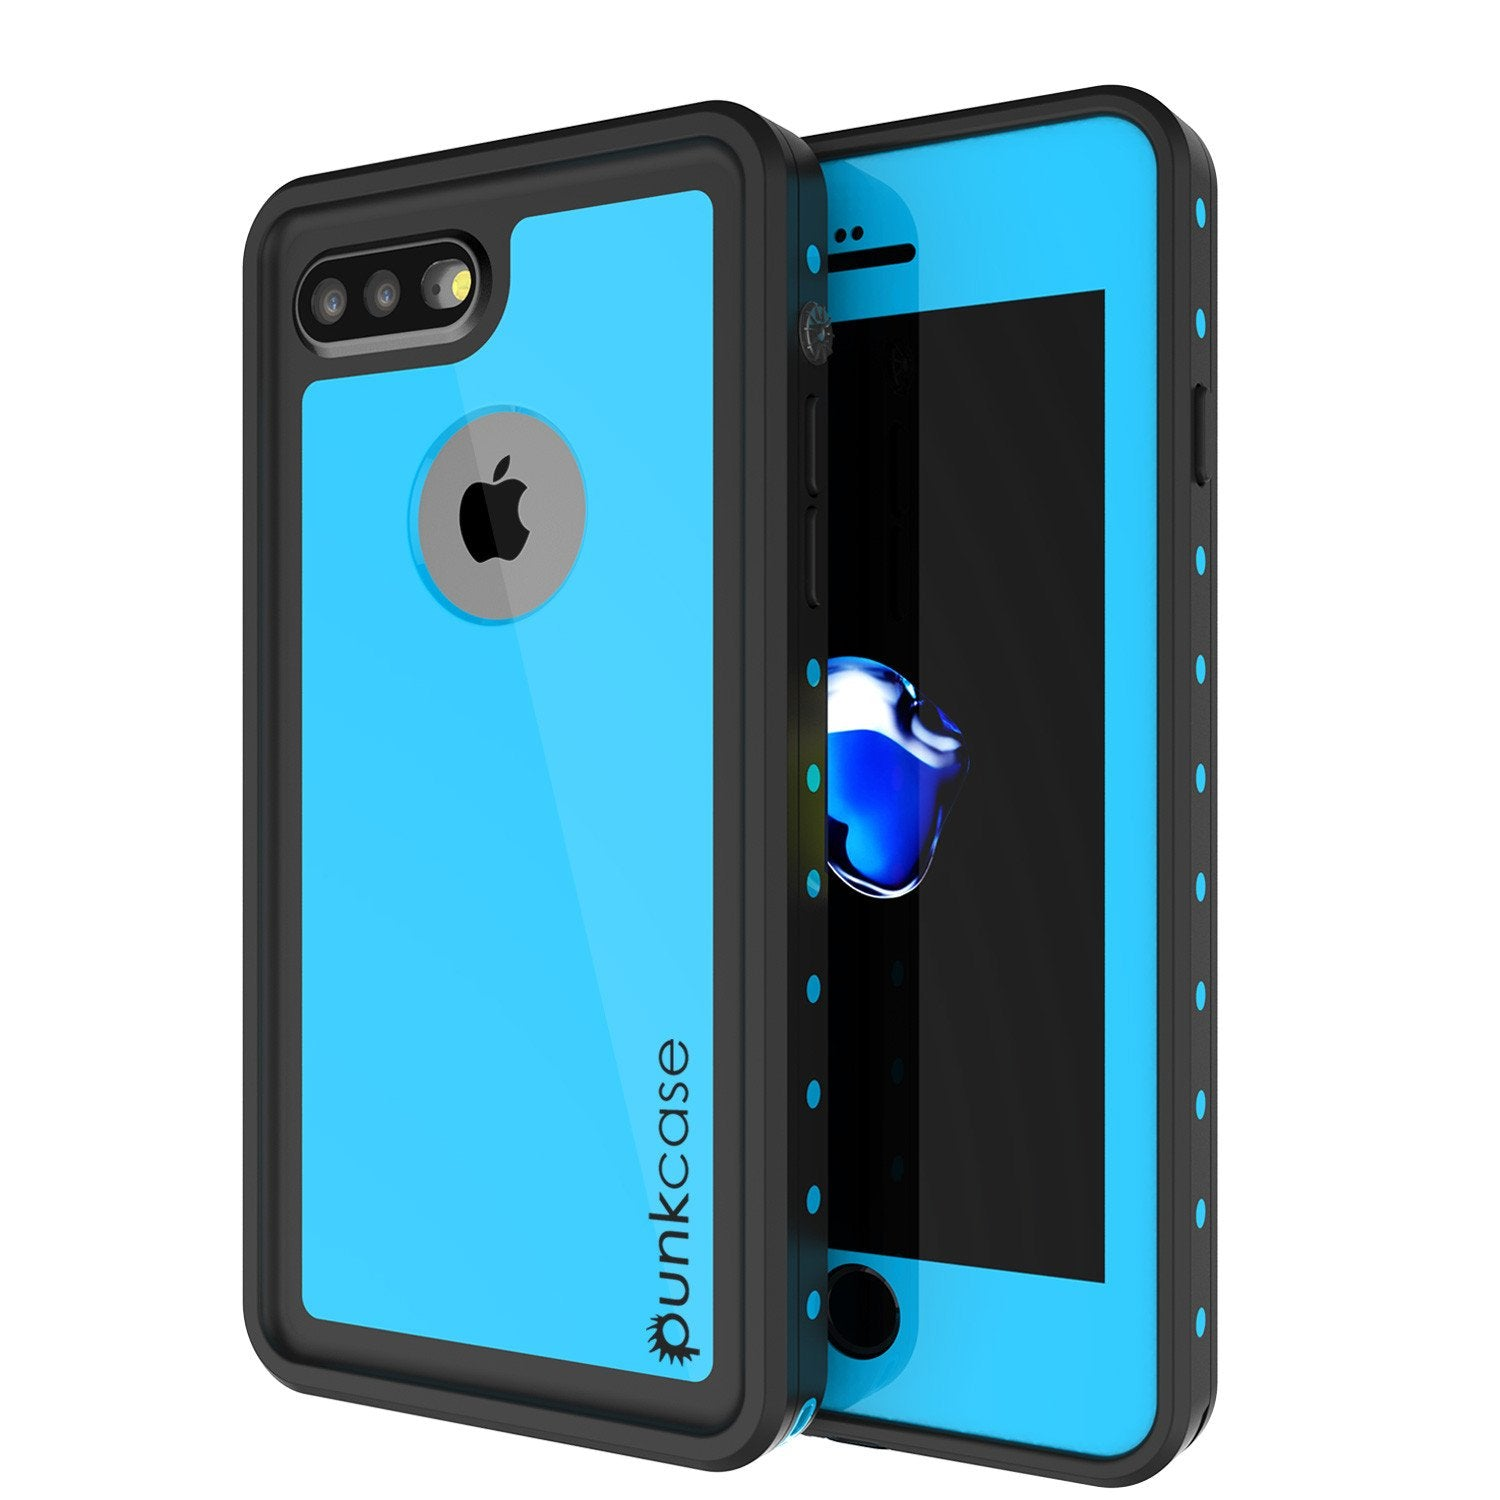 buy popular a77f5 4c289 iPhone 8+ Plus Waterproof IP68 Case, Punkcase [Light Blue] [StudStar  Series] [Slim Fit] [Dirtproof]